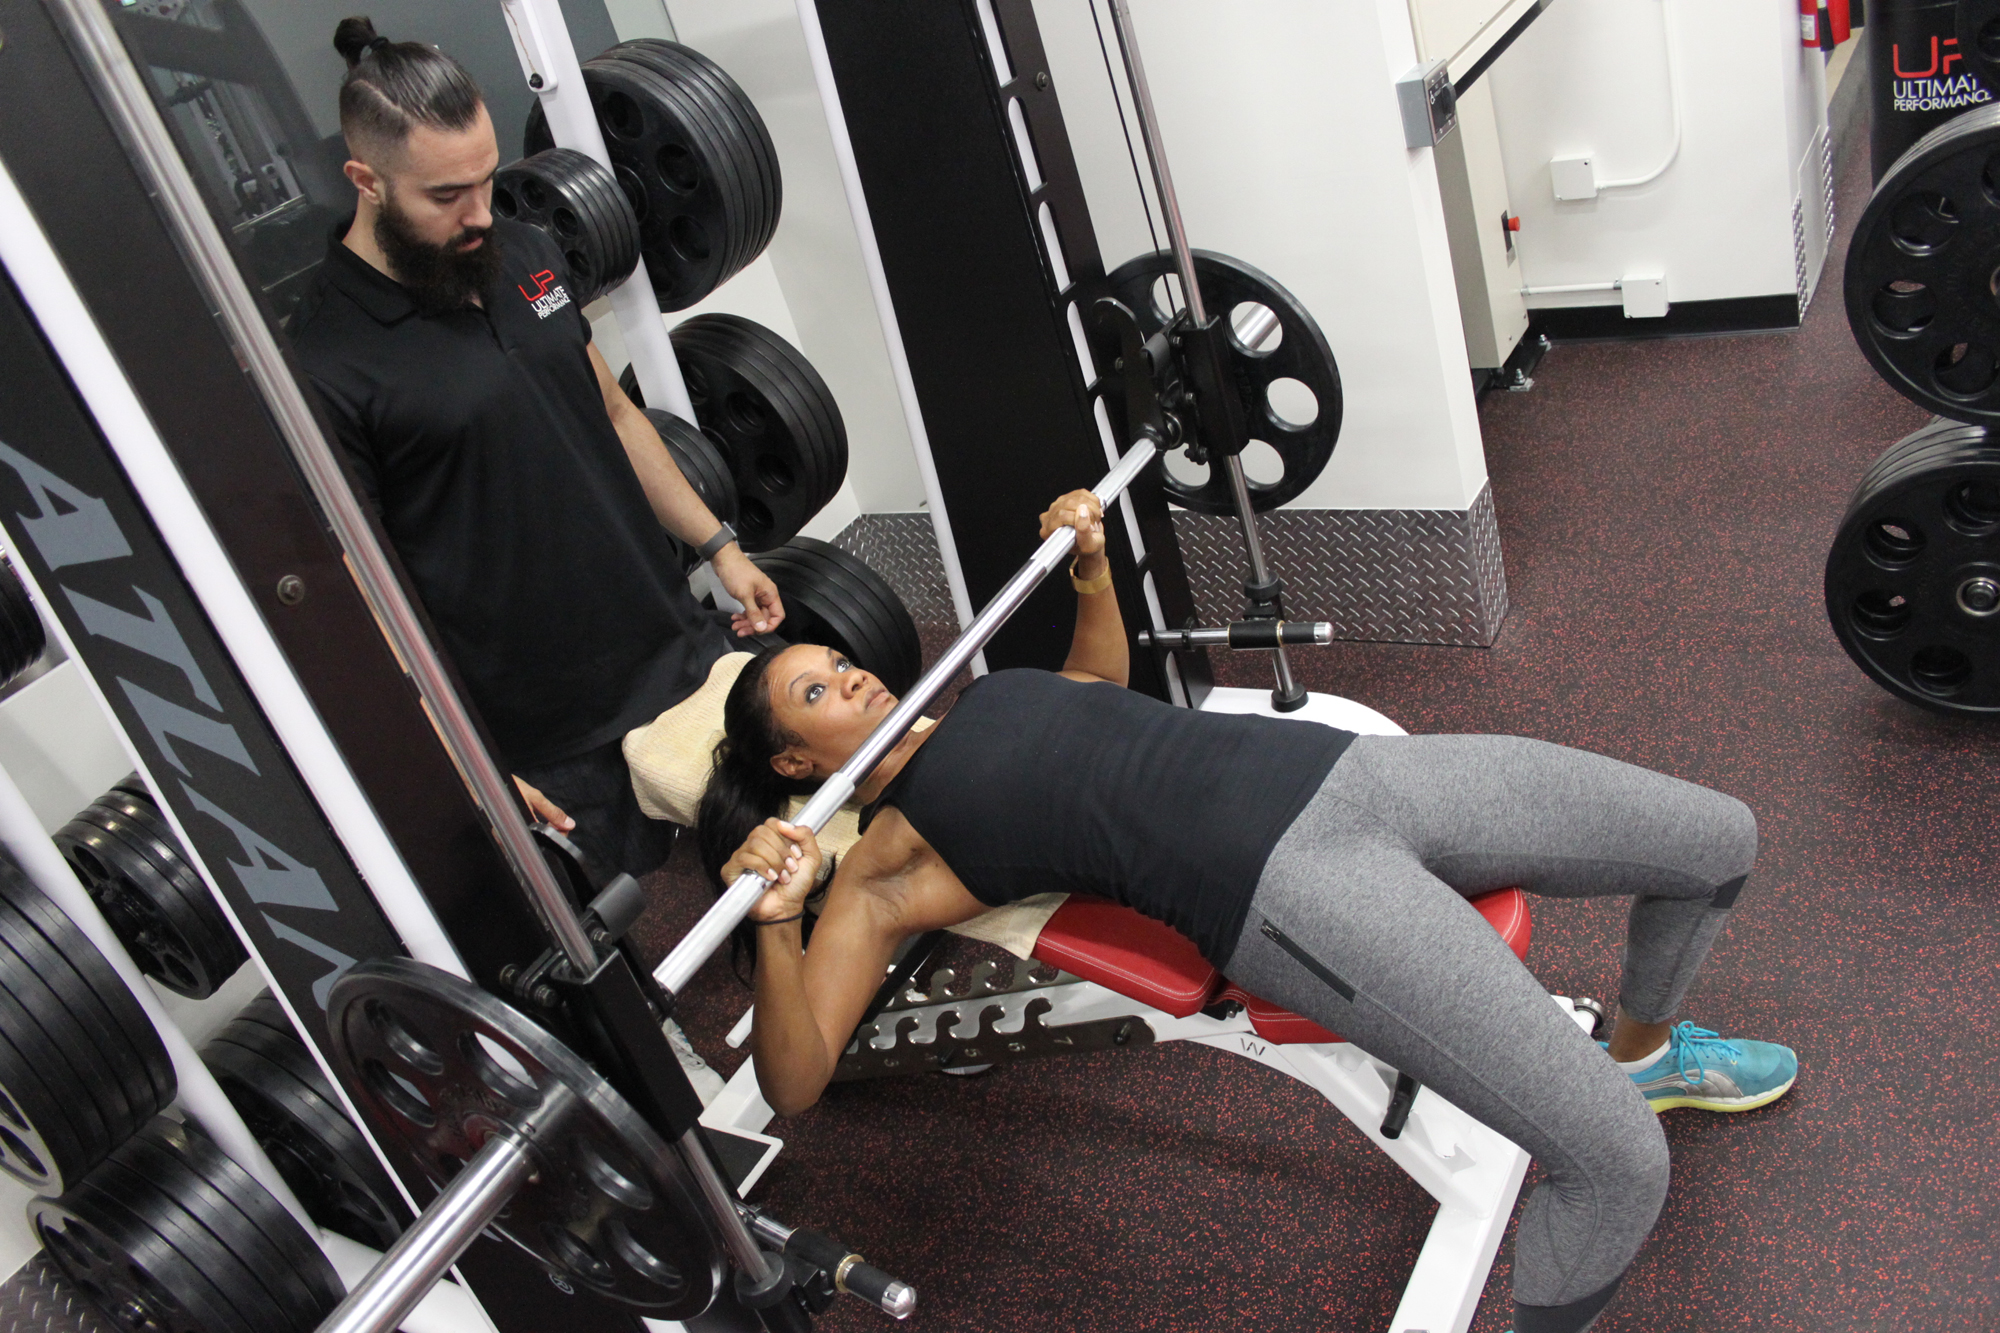 Victoria | Body Transformation | Training with her U.P. trainer